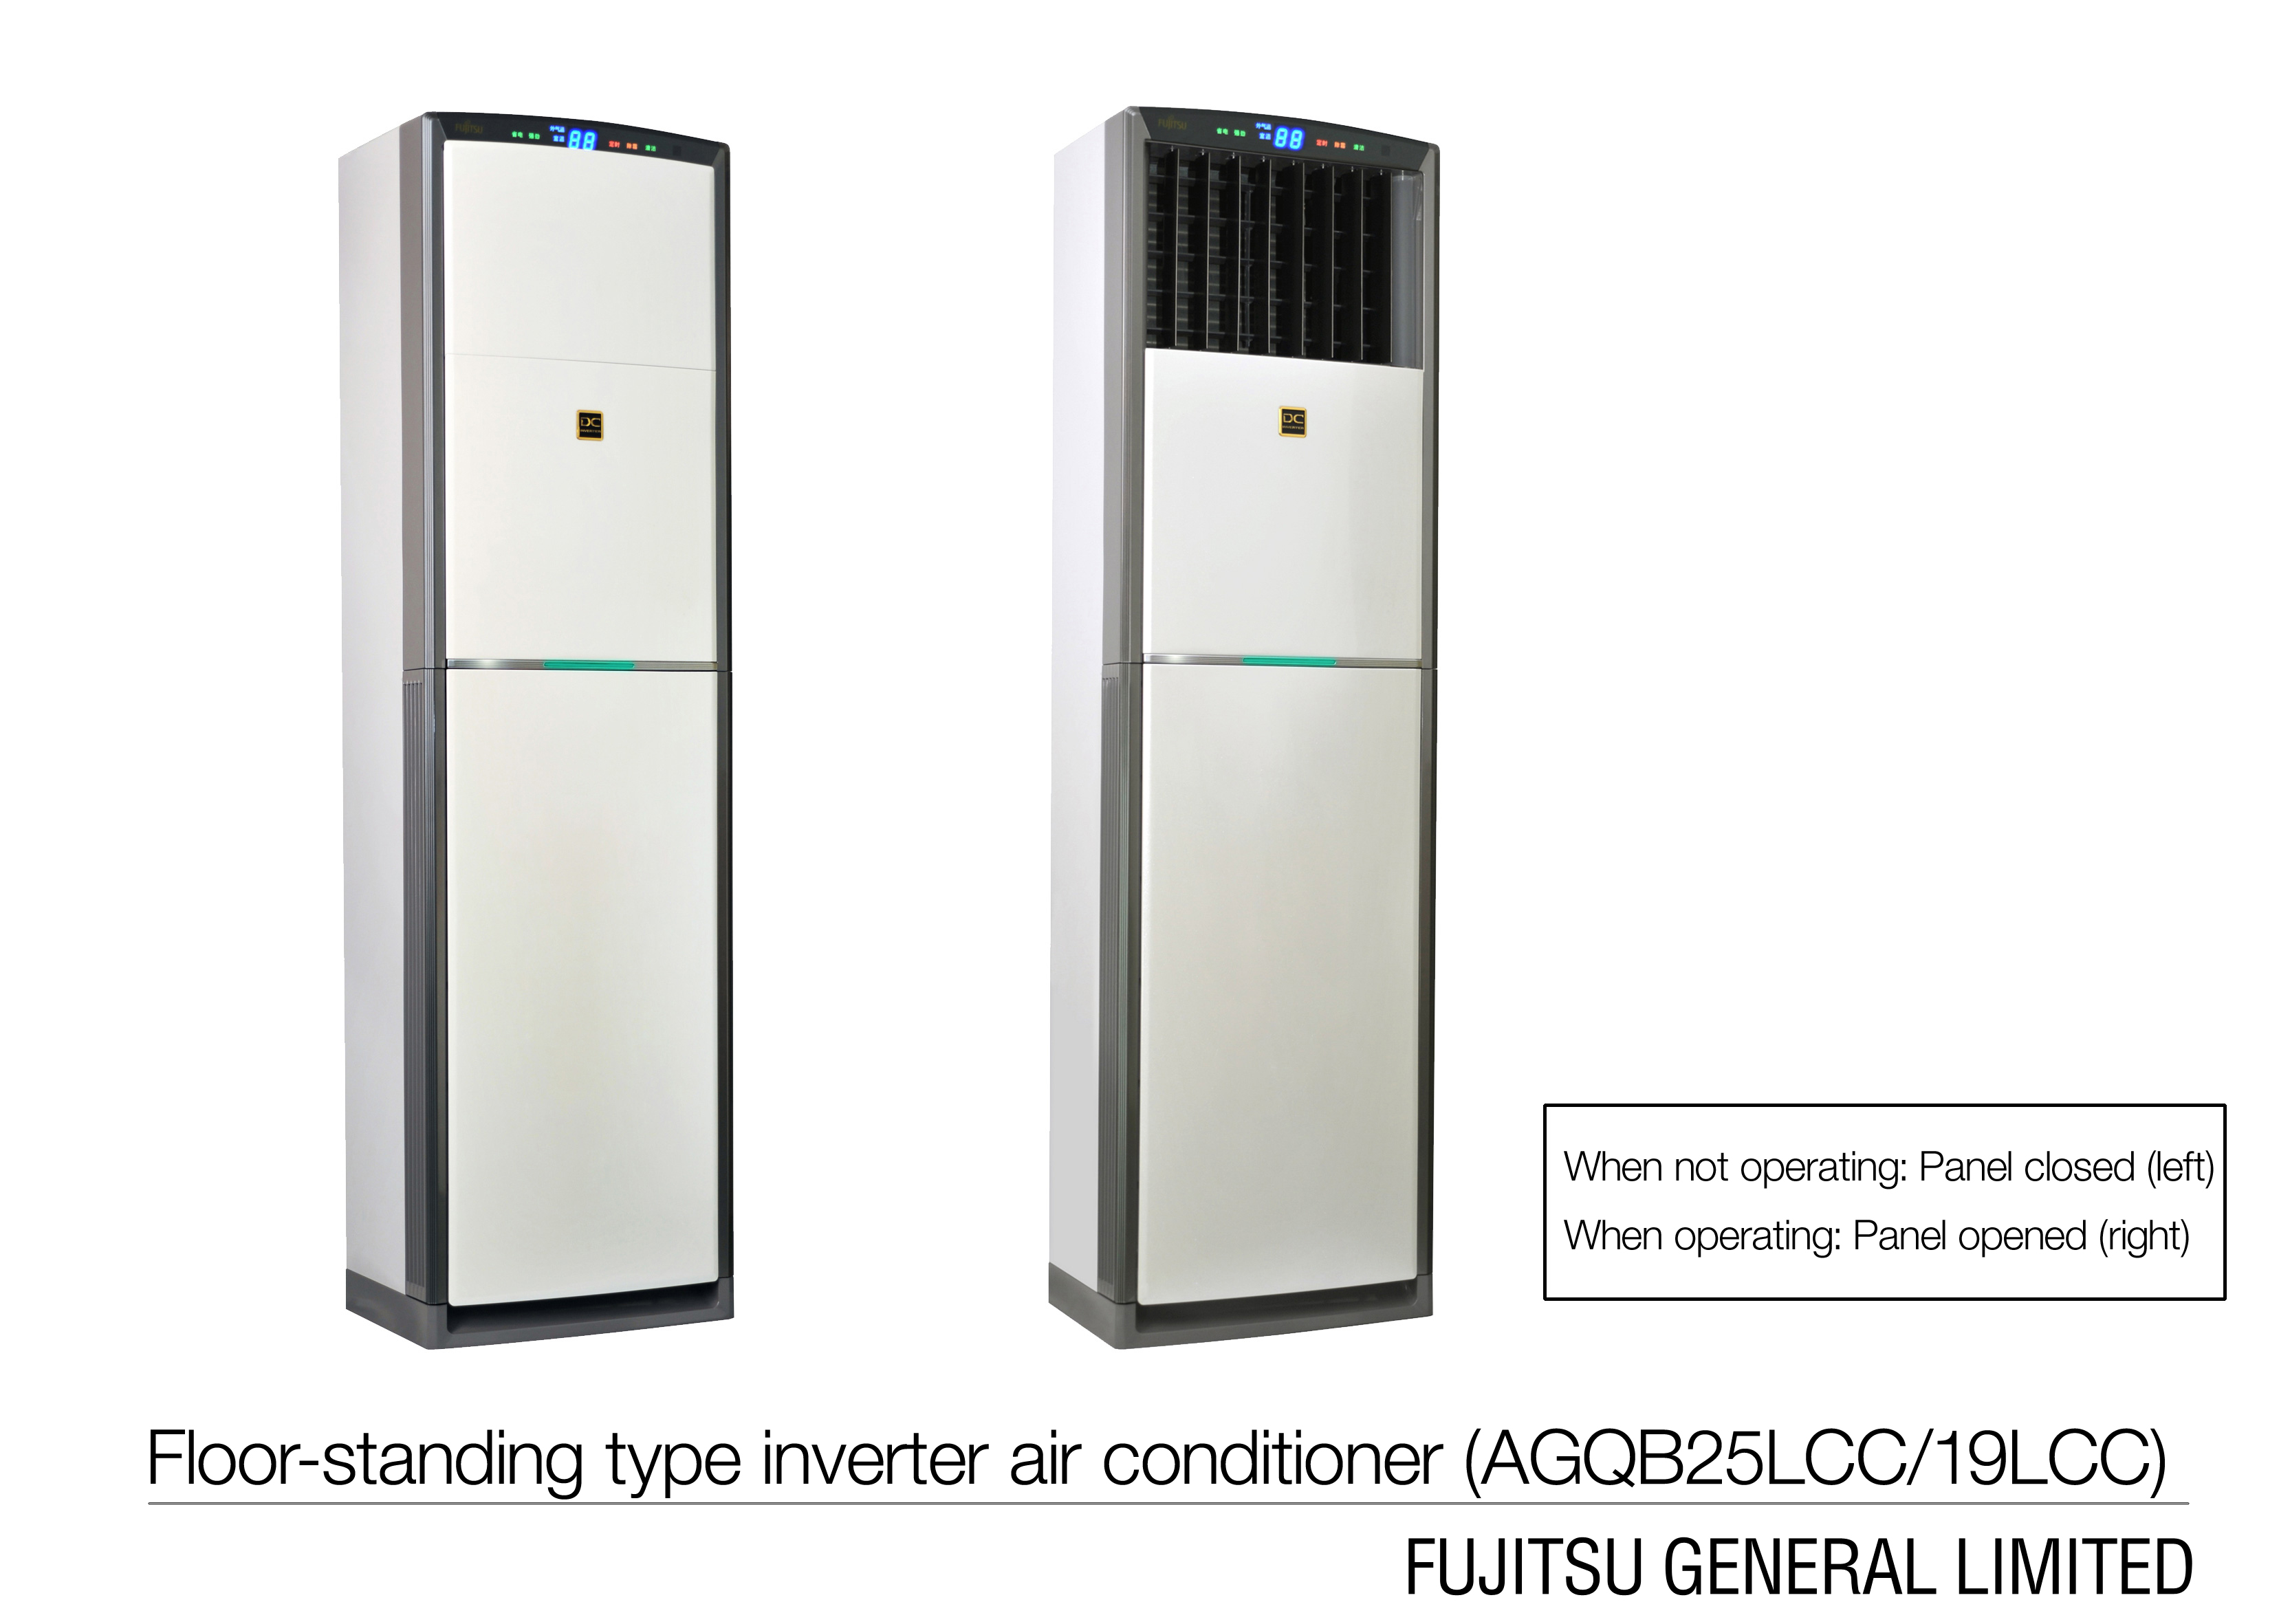 General Air Conditioners Realizing Industrys Top Energy Saving Performance New Release Of